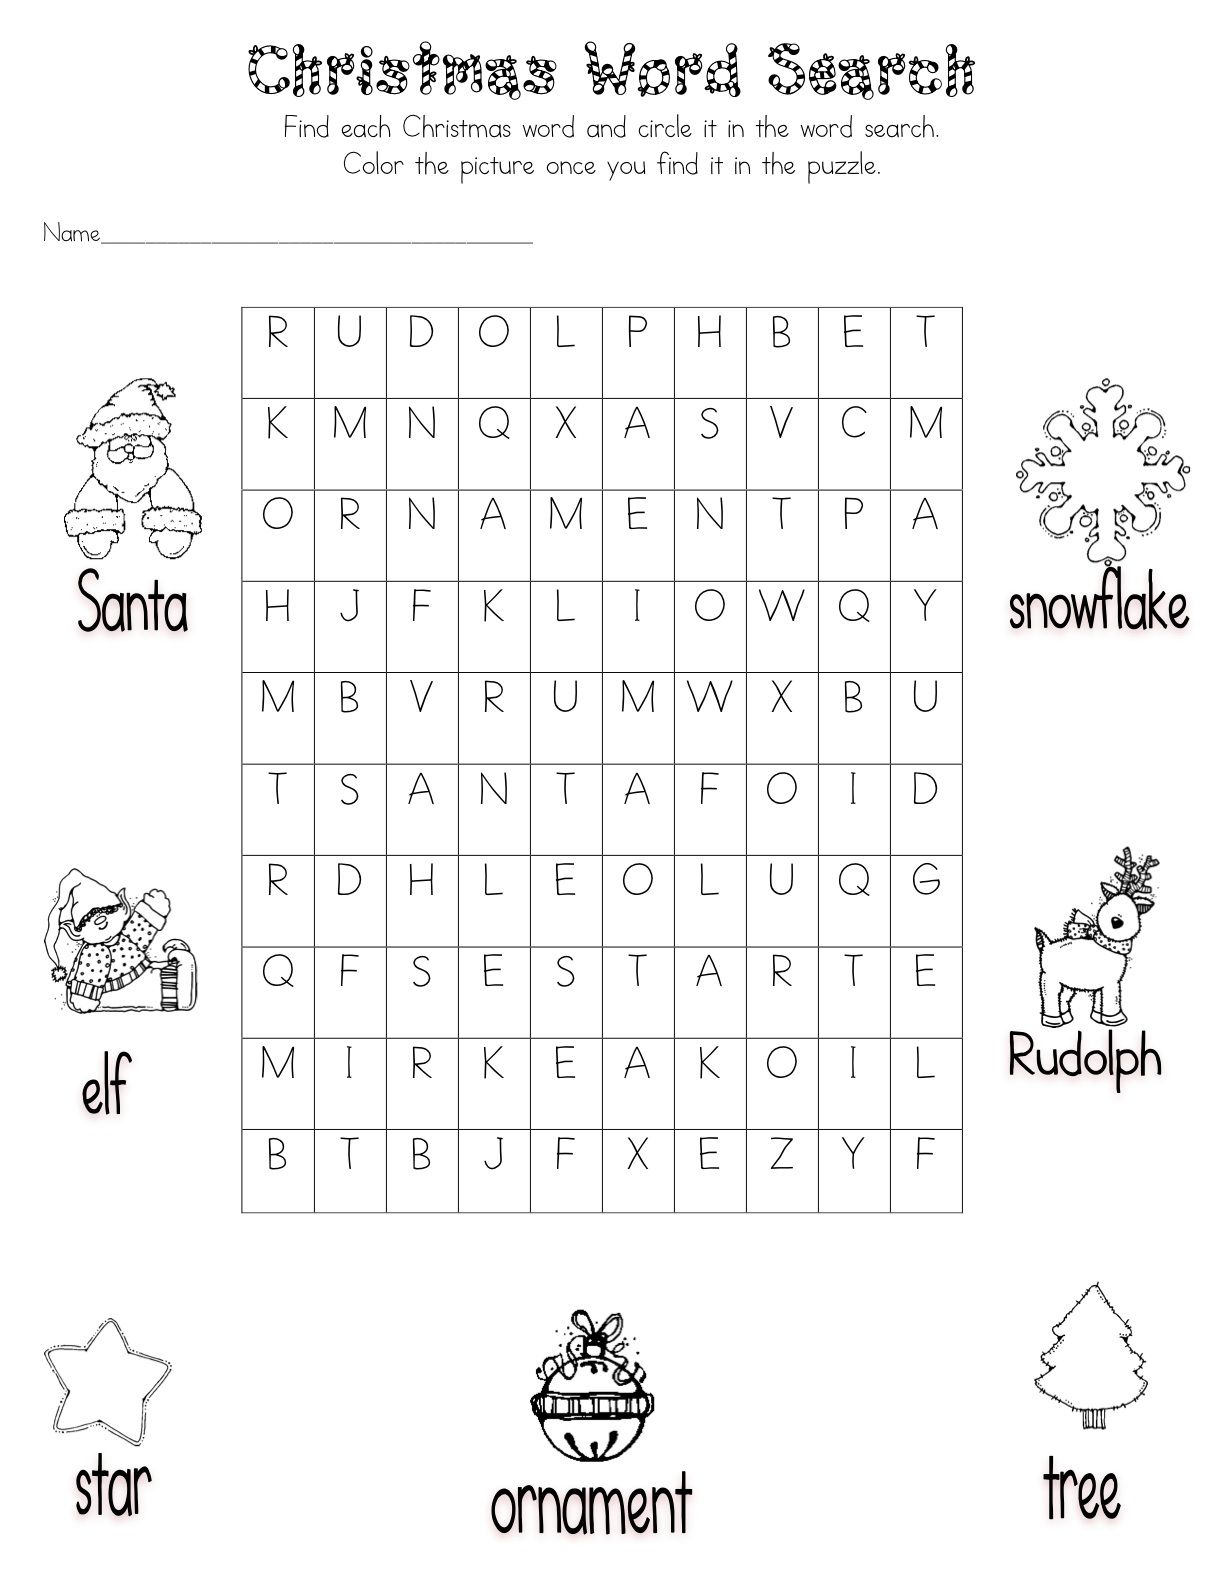 My Students Love Word Searches Did You Know That Word Searches Can Help With Letter Sound